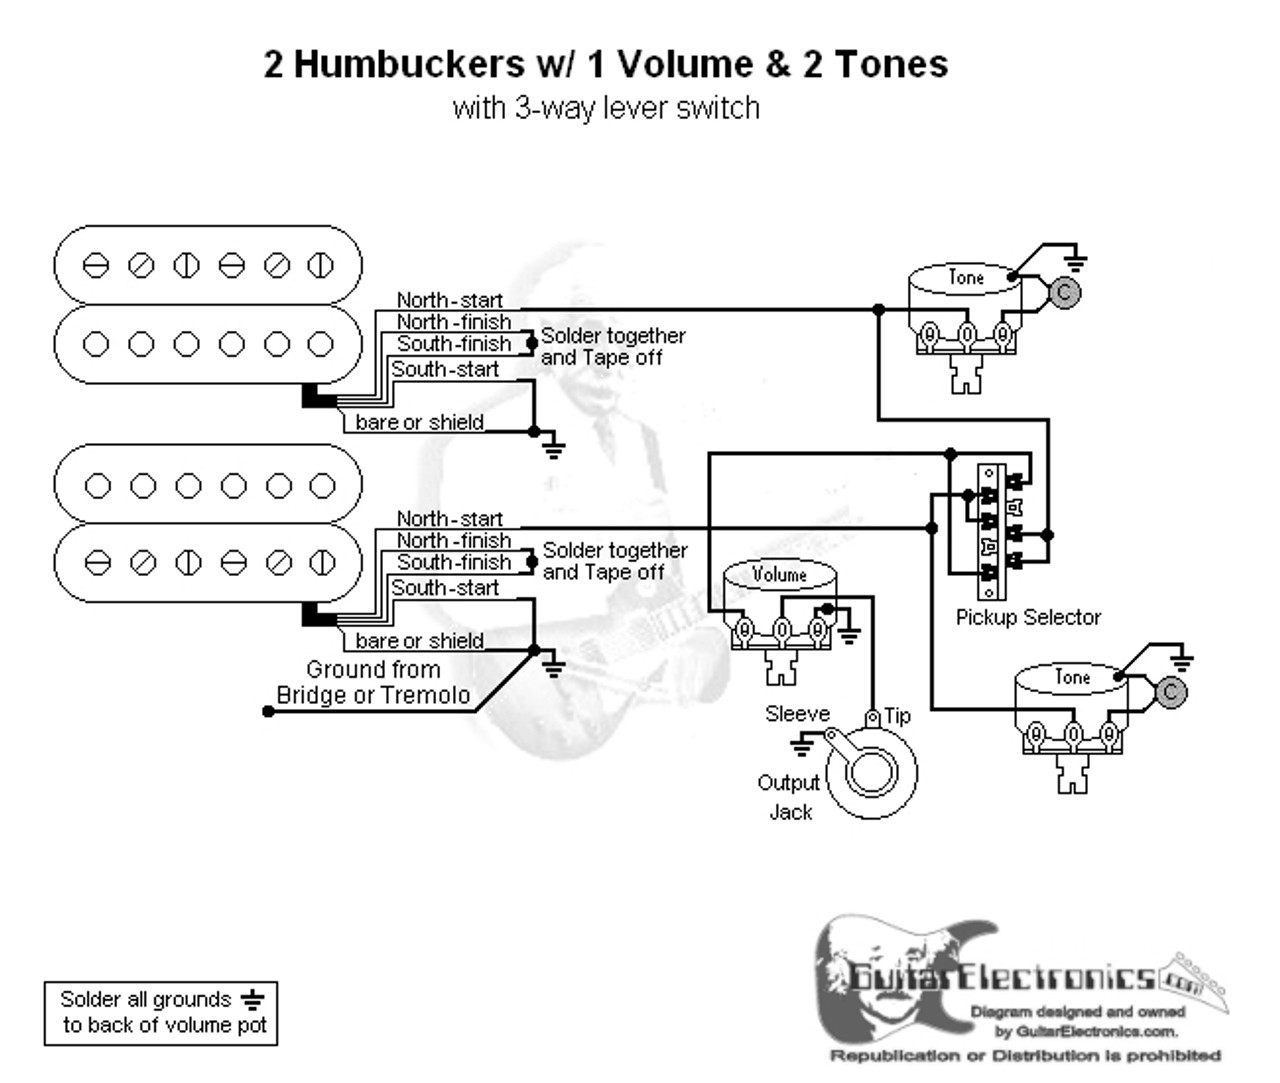 wiring schematic gibson 2 volume 1 tone wiring diagram two volume one tone strat wiring wiring schematic gibson 2 volume 1 tone #8